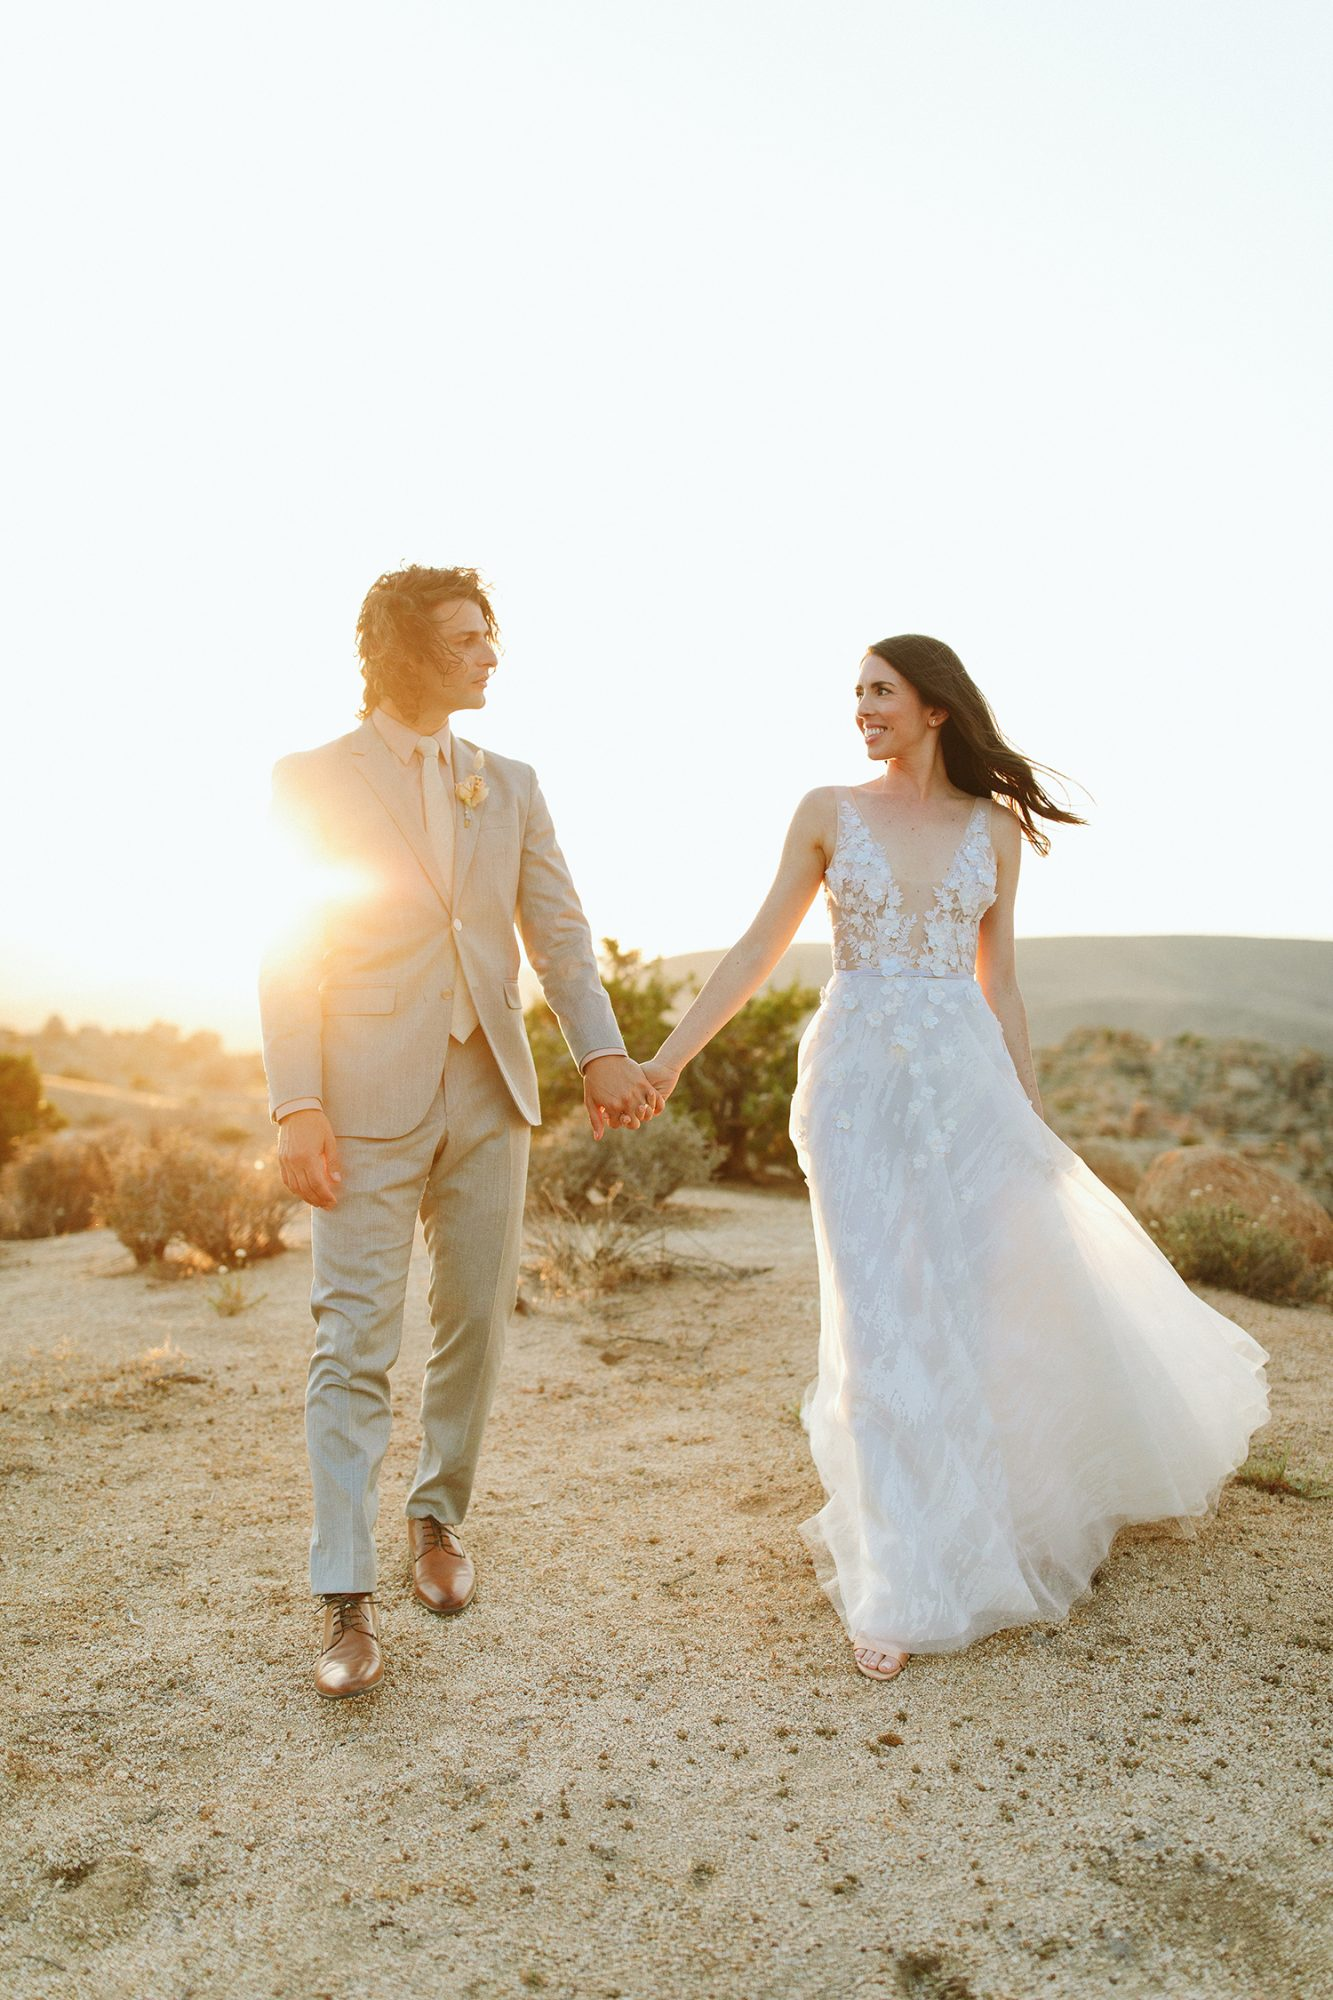 ashley basil wedding couple on desert at golden hour